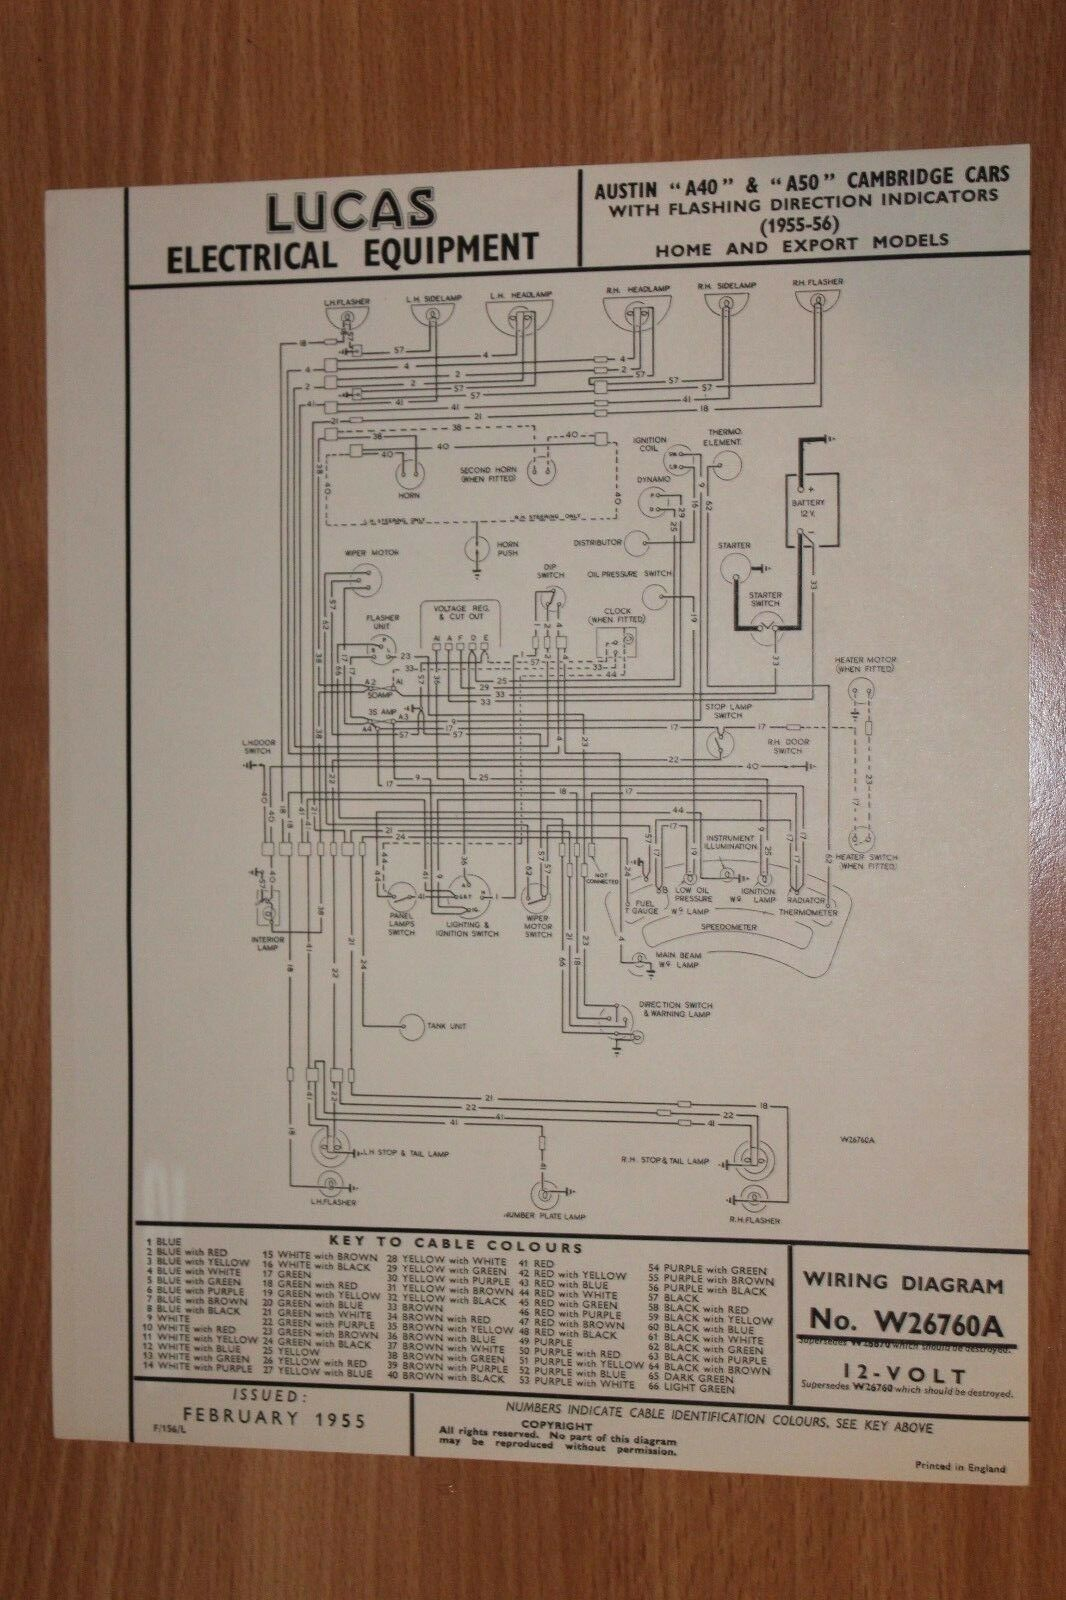 Austin A40 A50 Cambridge 1955 1956 Home Export Original Lucas Wiring Diagram  1 of 1Only 1 available See More